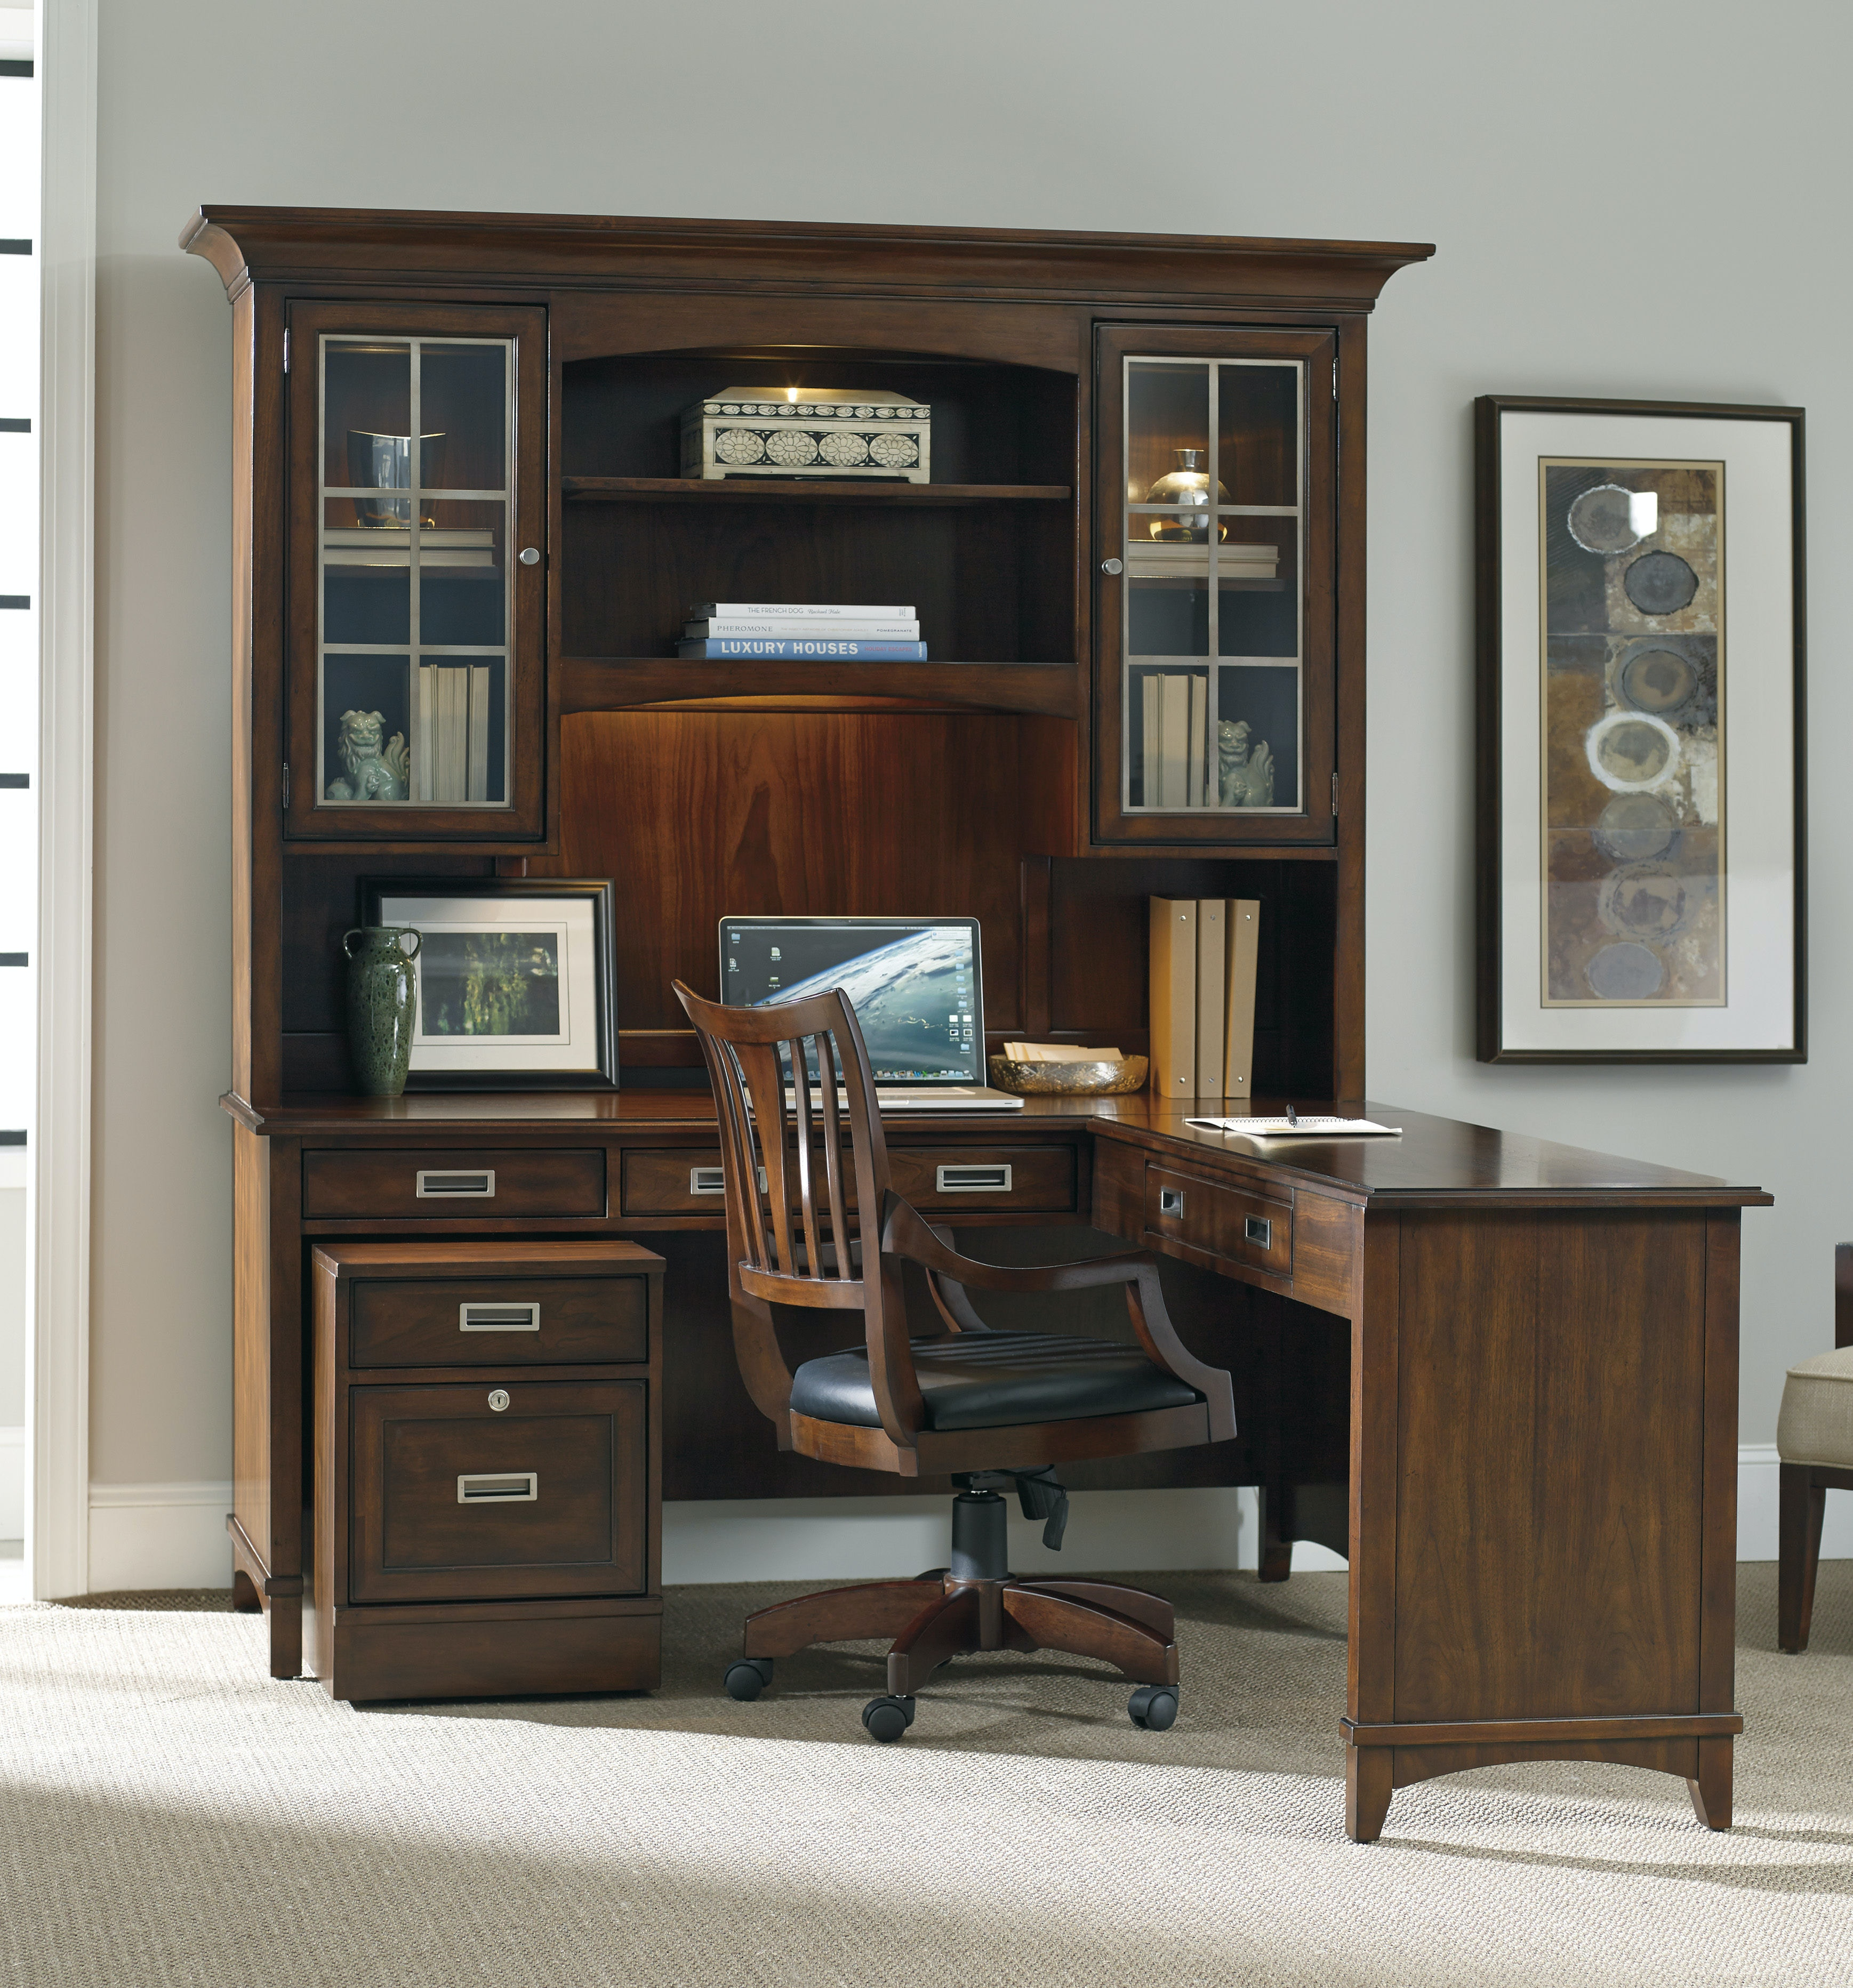 Home Office Furniture Michigan 28 Images Home Office Furniture Michigan Home Page Eos